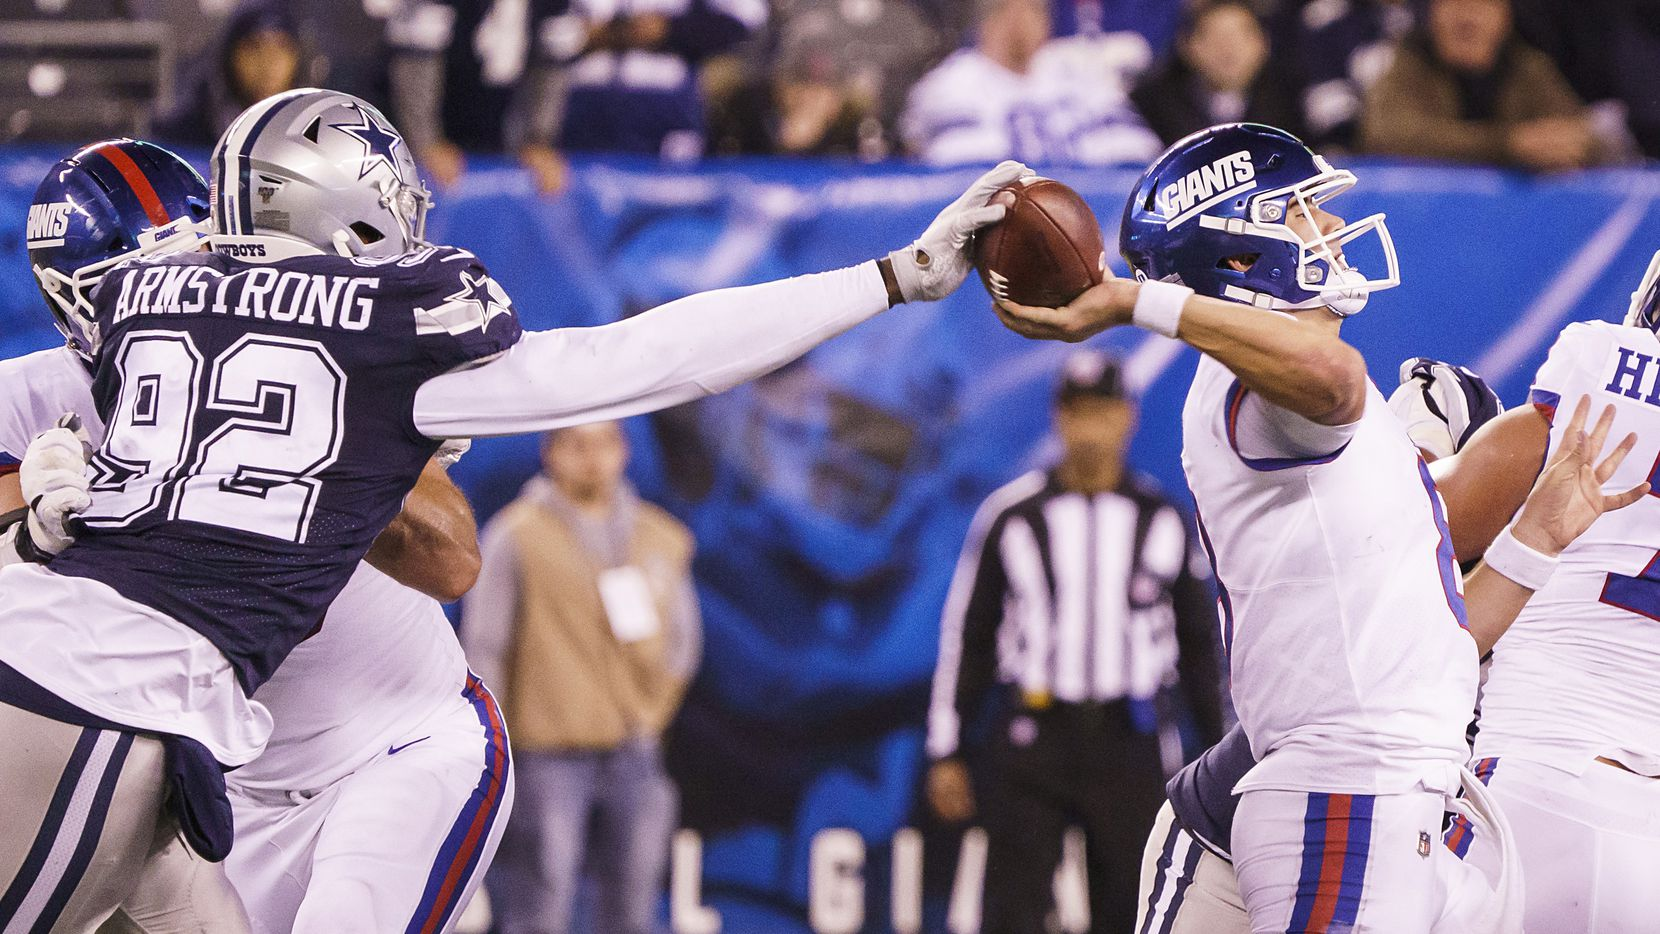 Dallas Cowboys defensive end Dorance Armstrong (92) strips the ball from New York Giants quarterback Daniel Jones (8) for a sack and fumble that was returned for a Cowboys touchdown during the second half of an NFL football game, Monday, Nov. 4, 2019, in East Rutherford, N.J.